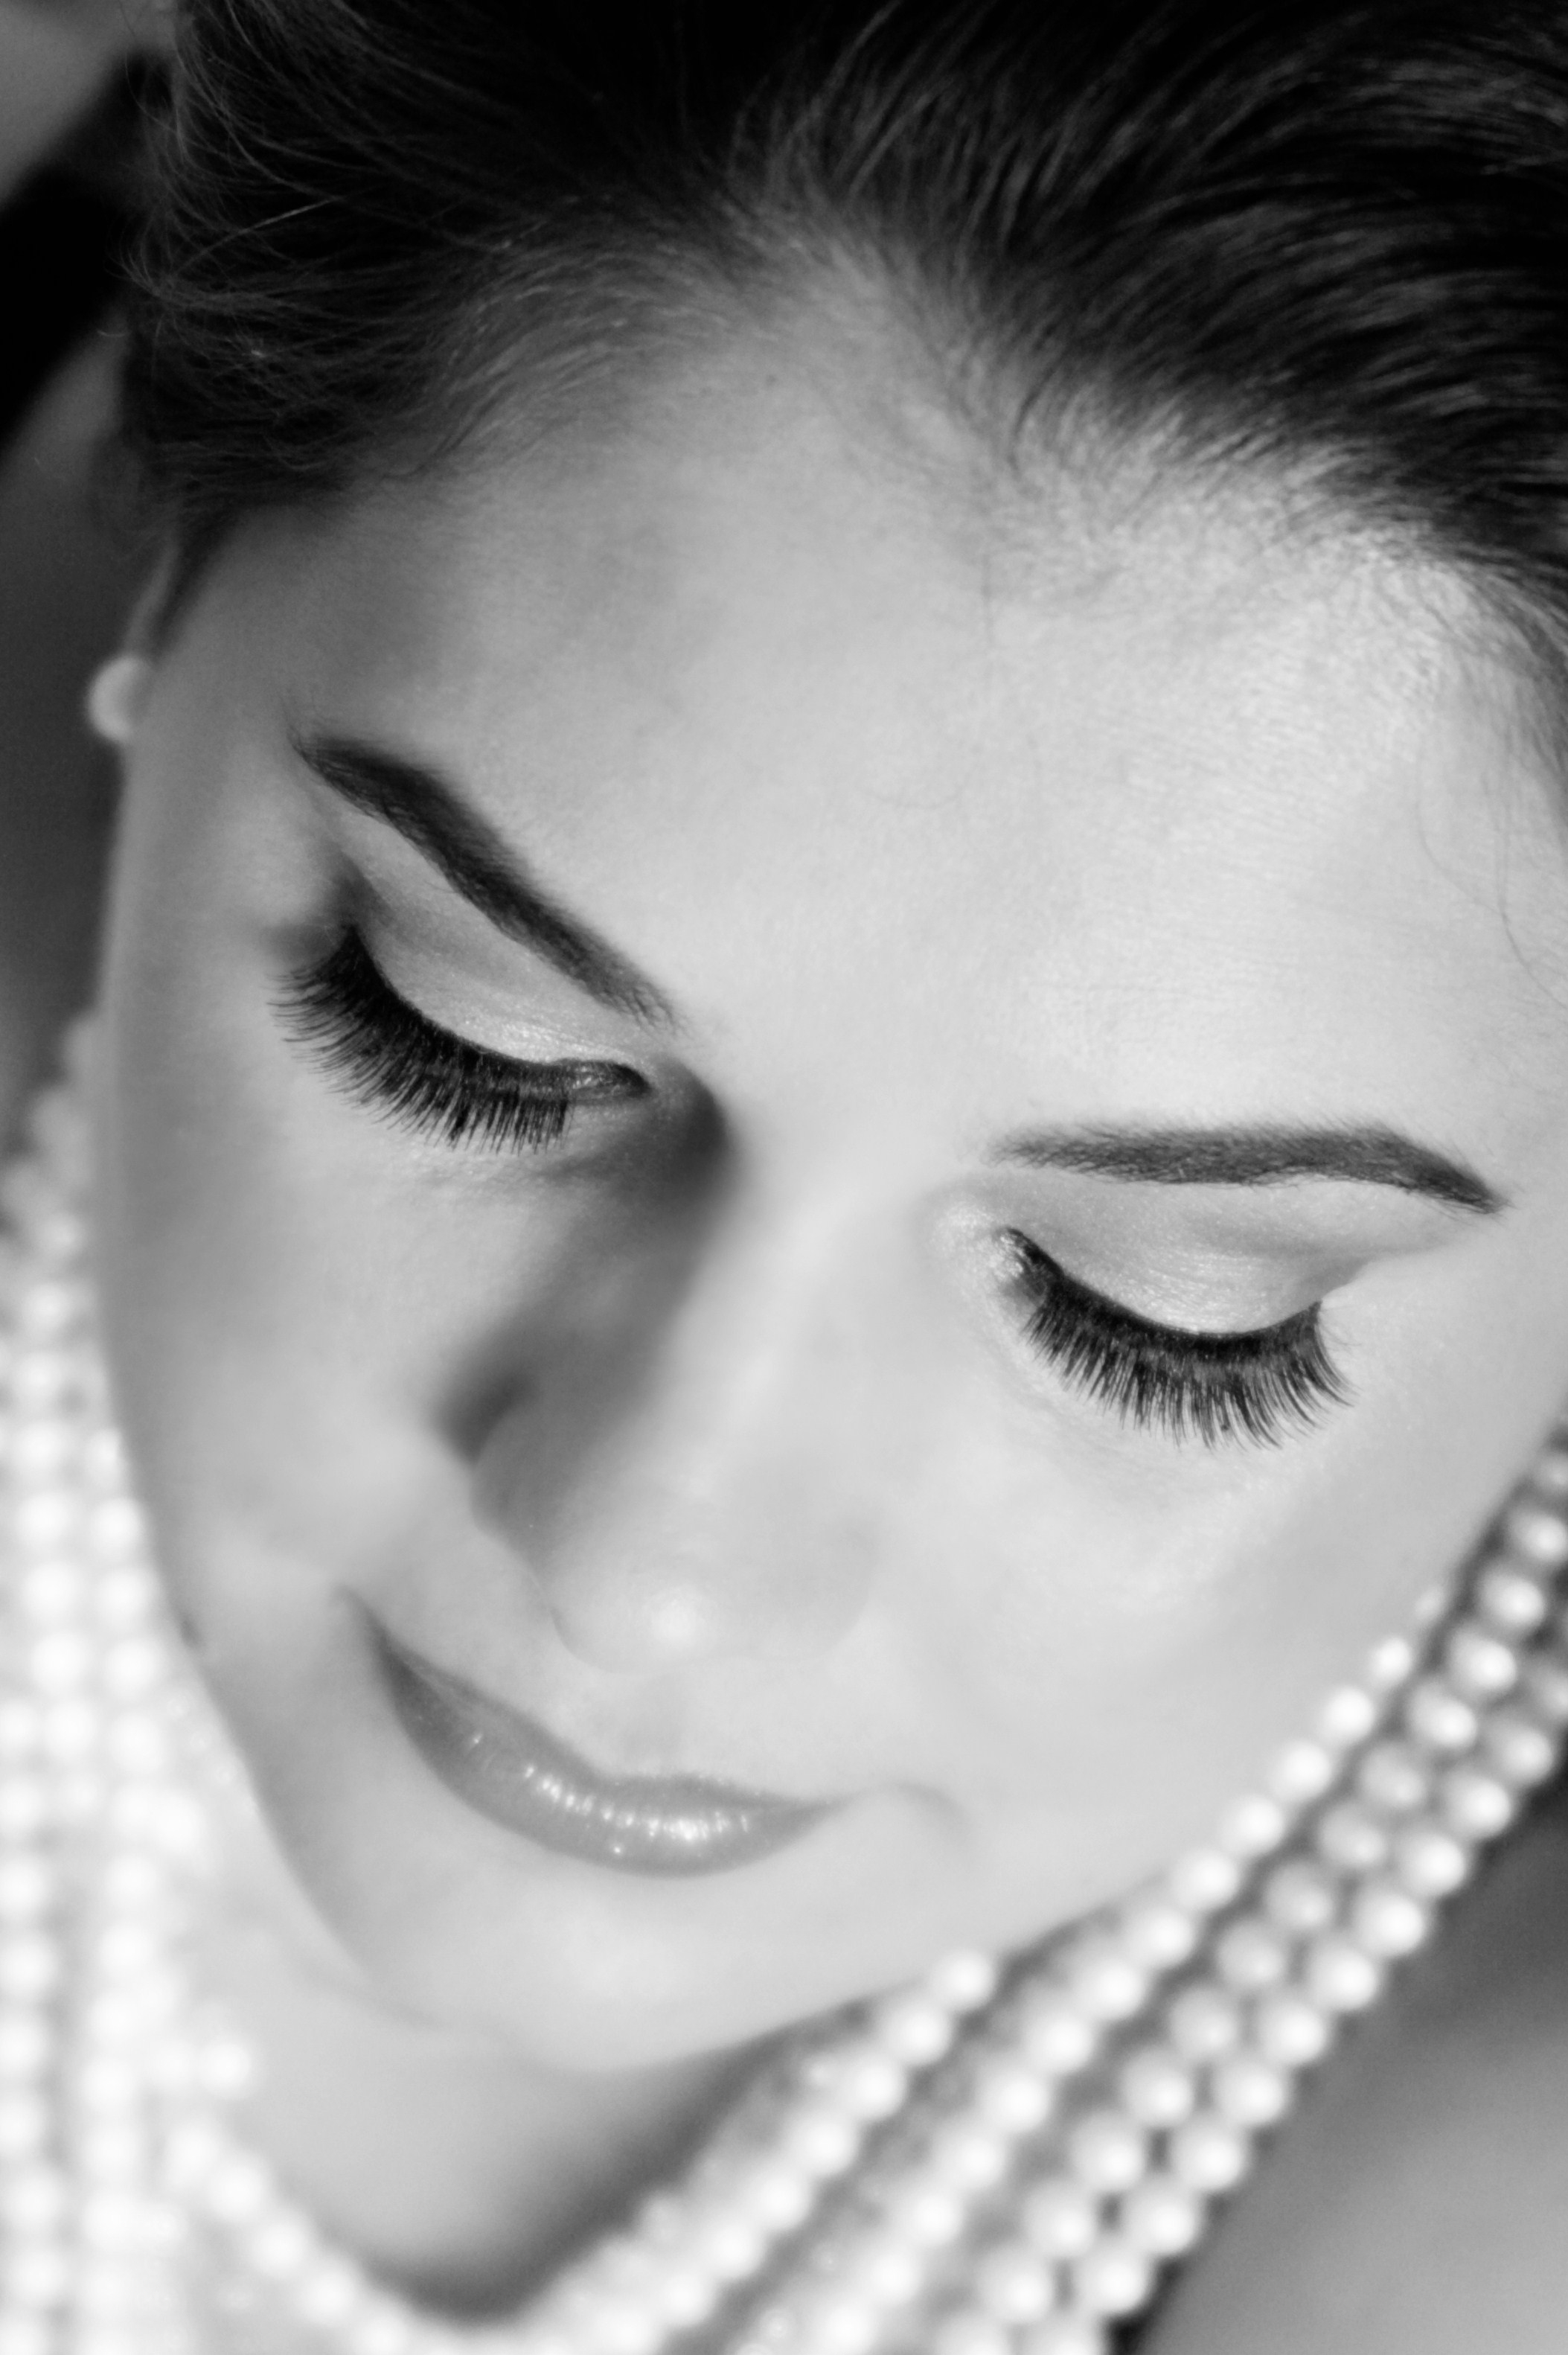 False-eyelashes-bridal-makeup-tips-tricks-advice.original